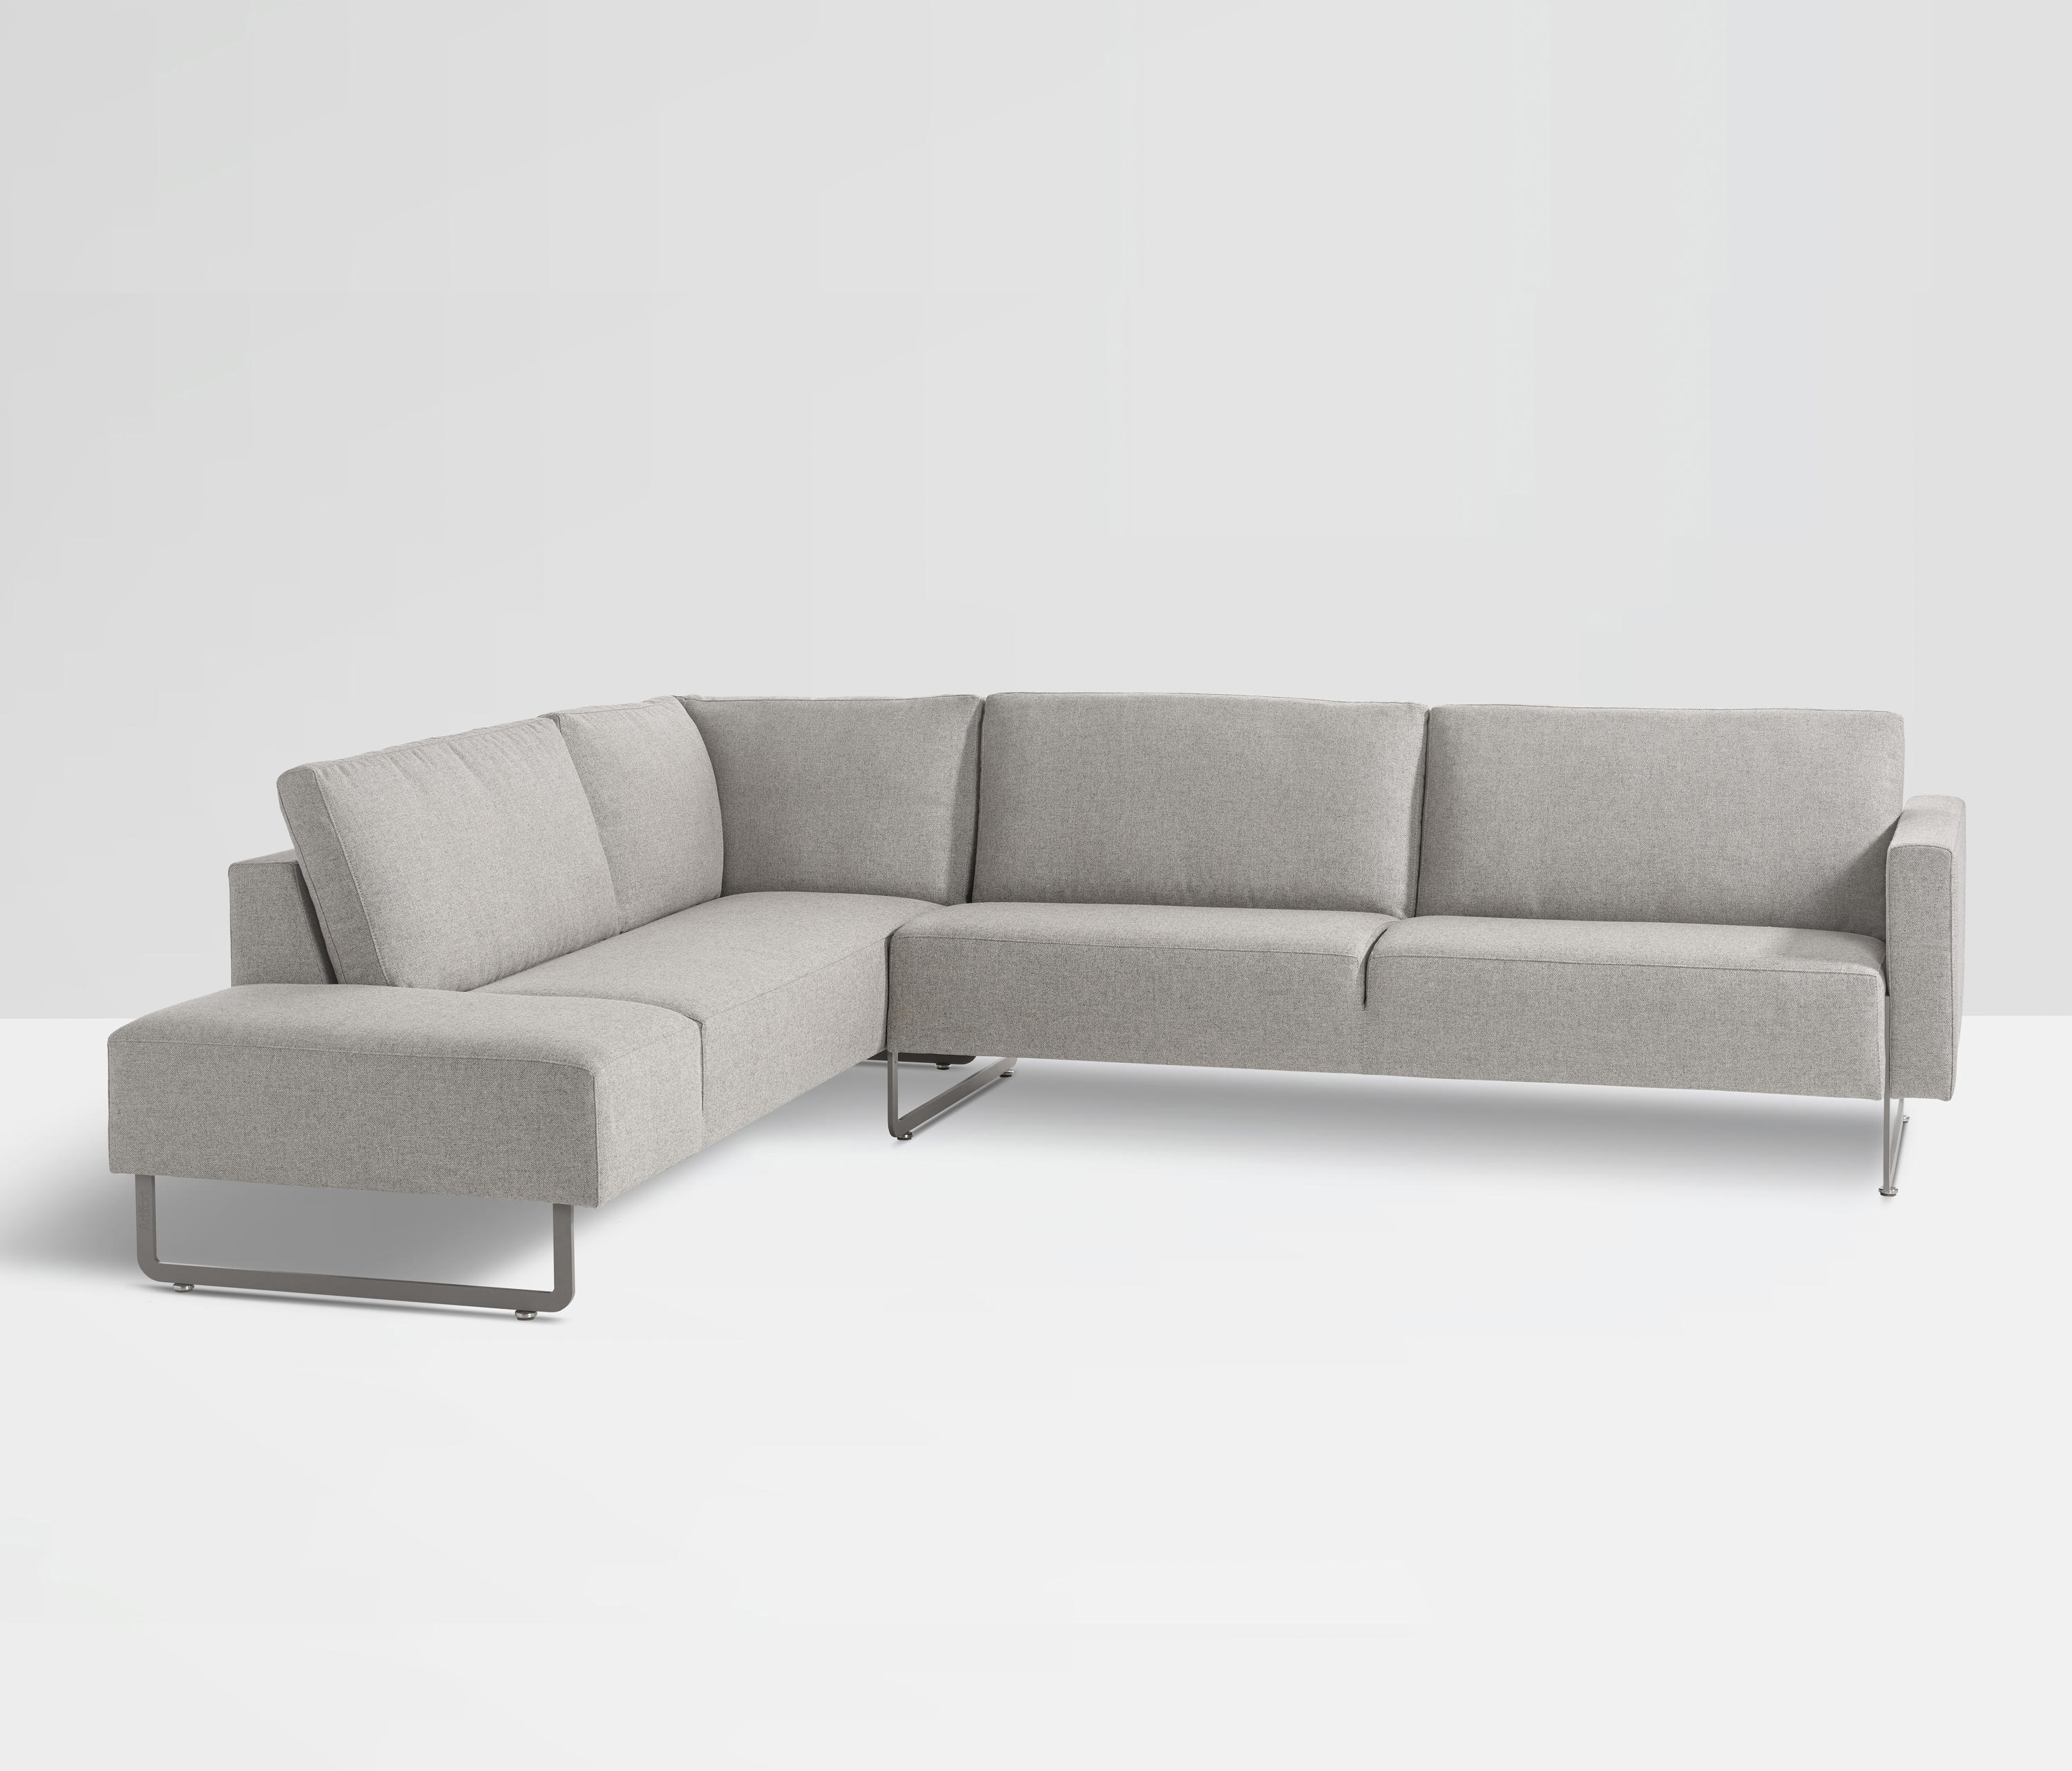 Artifort Mare Fauteuils.Mare Loose Cushion Sofas From Artifort Architonic